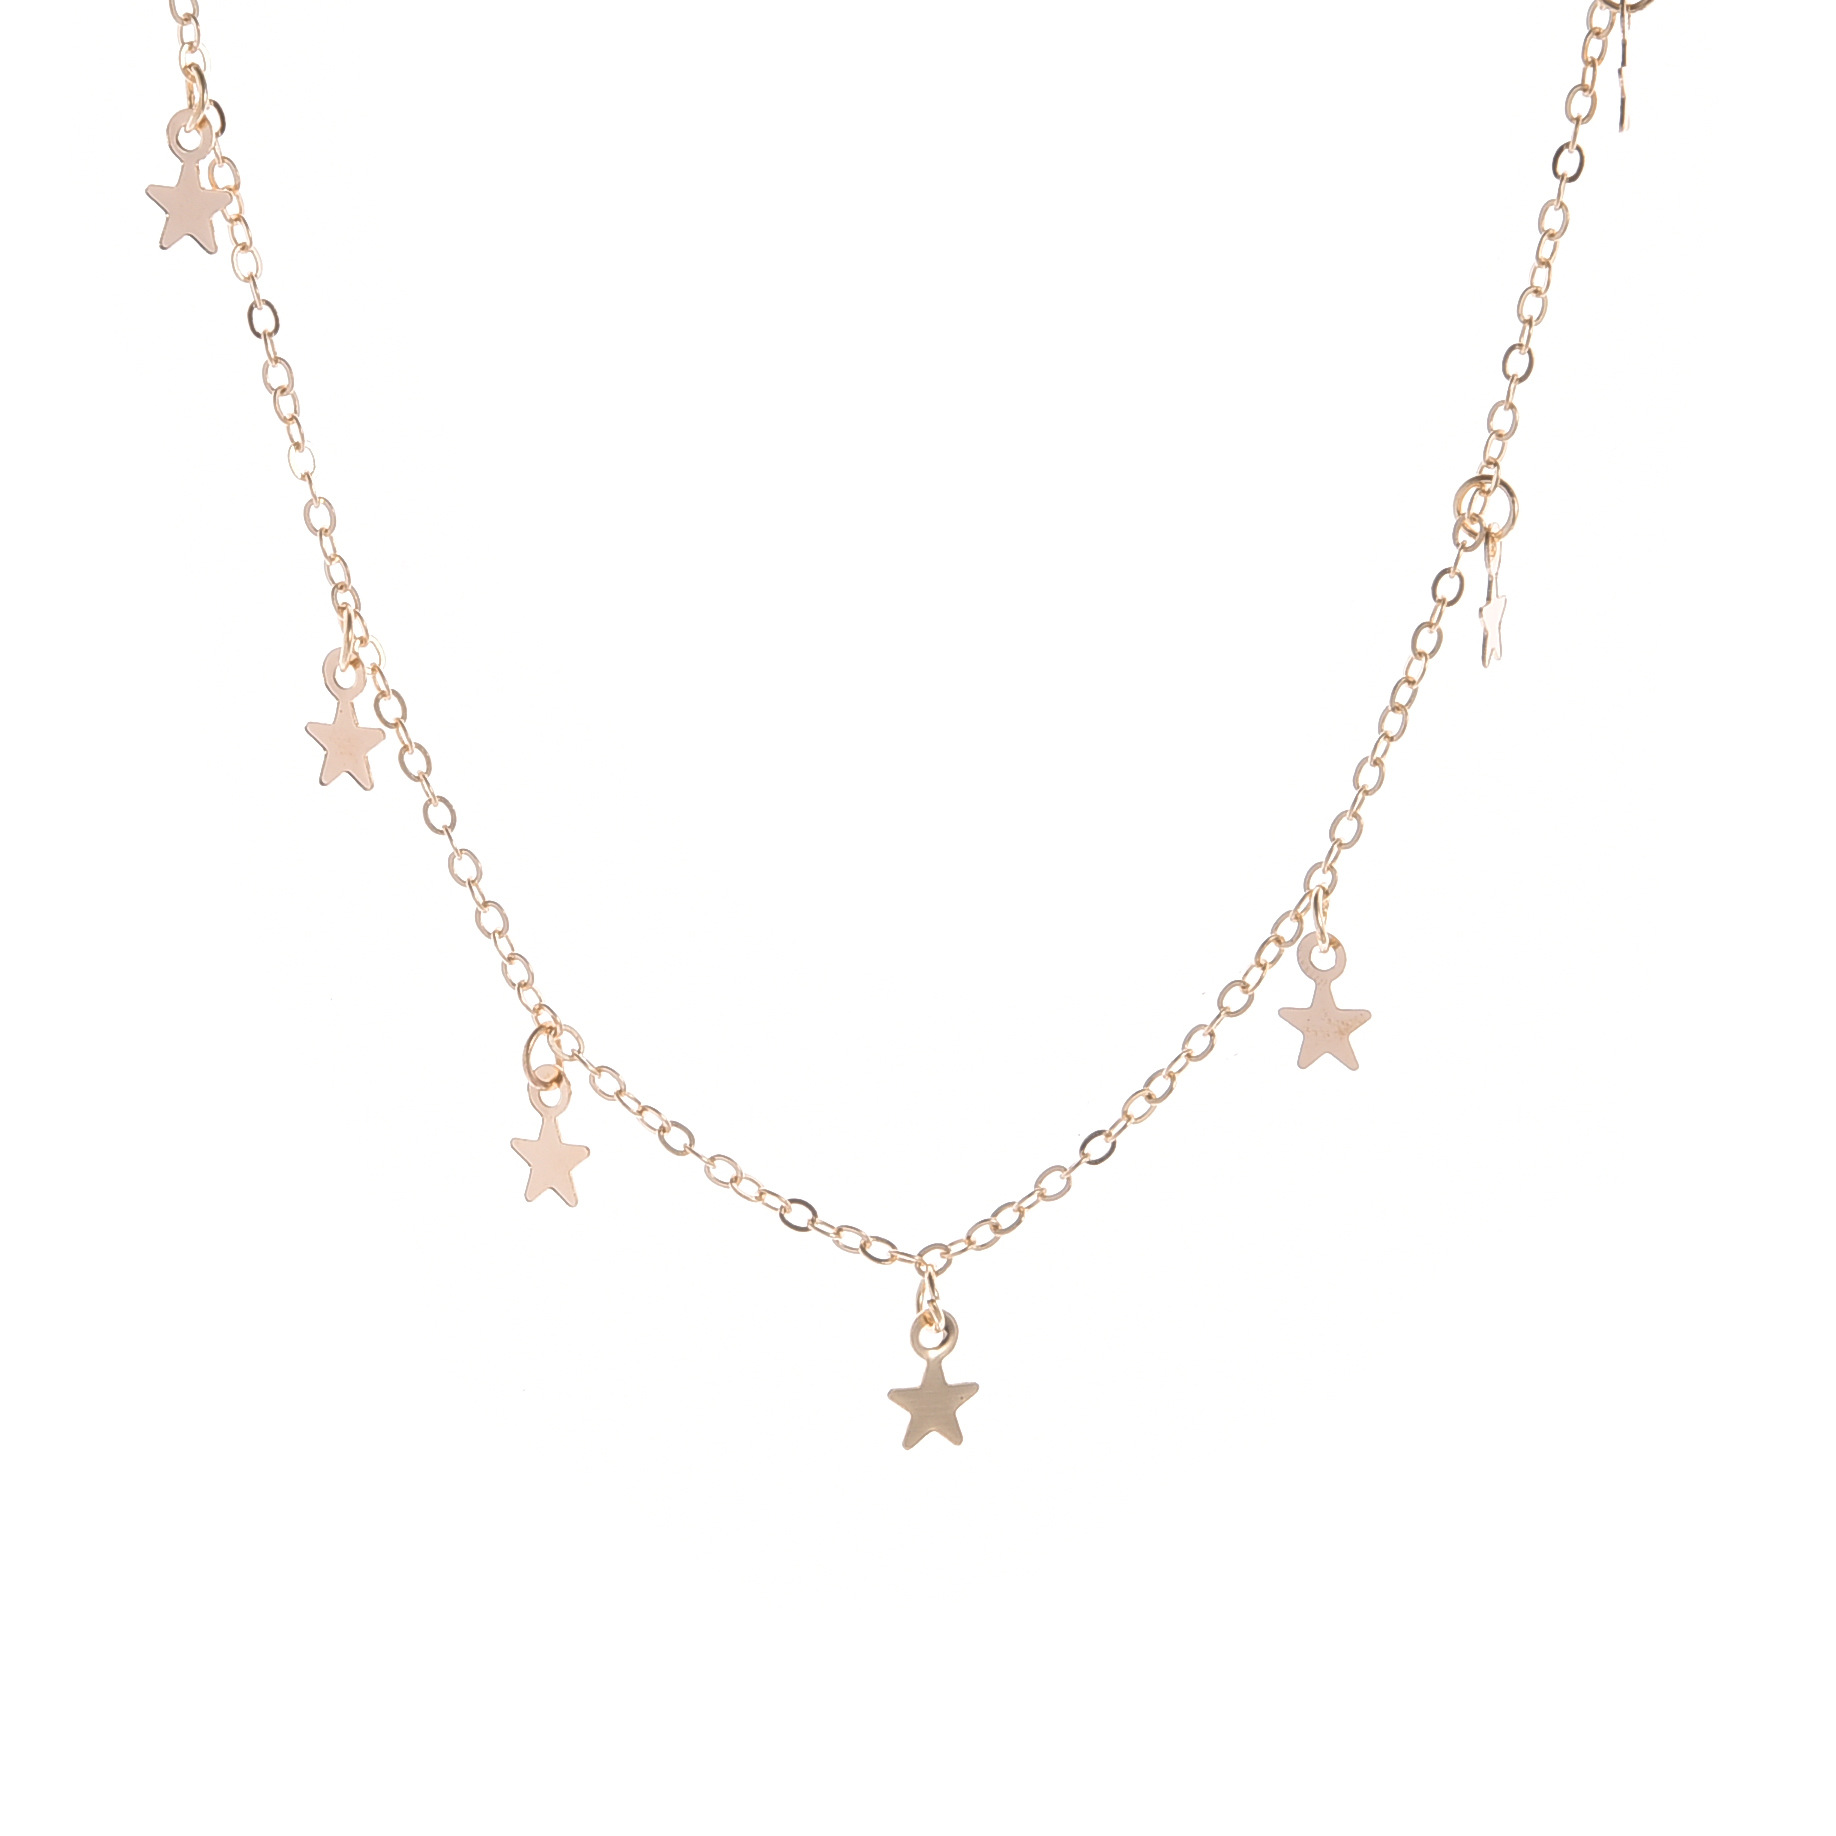 2020 Necklace Jewelry Suitable for Birthday, Party, Shopping, New Simple Fashion Necklace Five-pointed Star Pendant Star